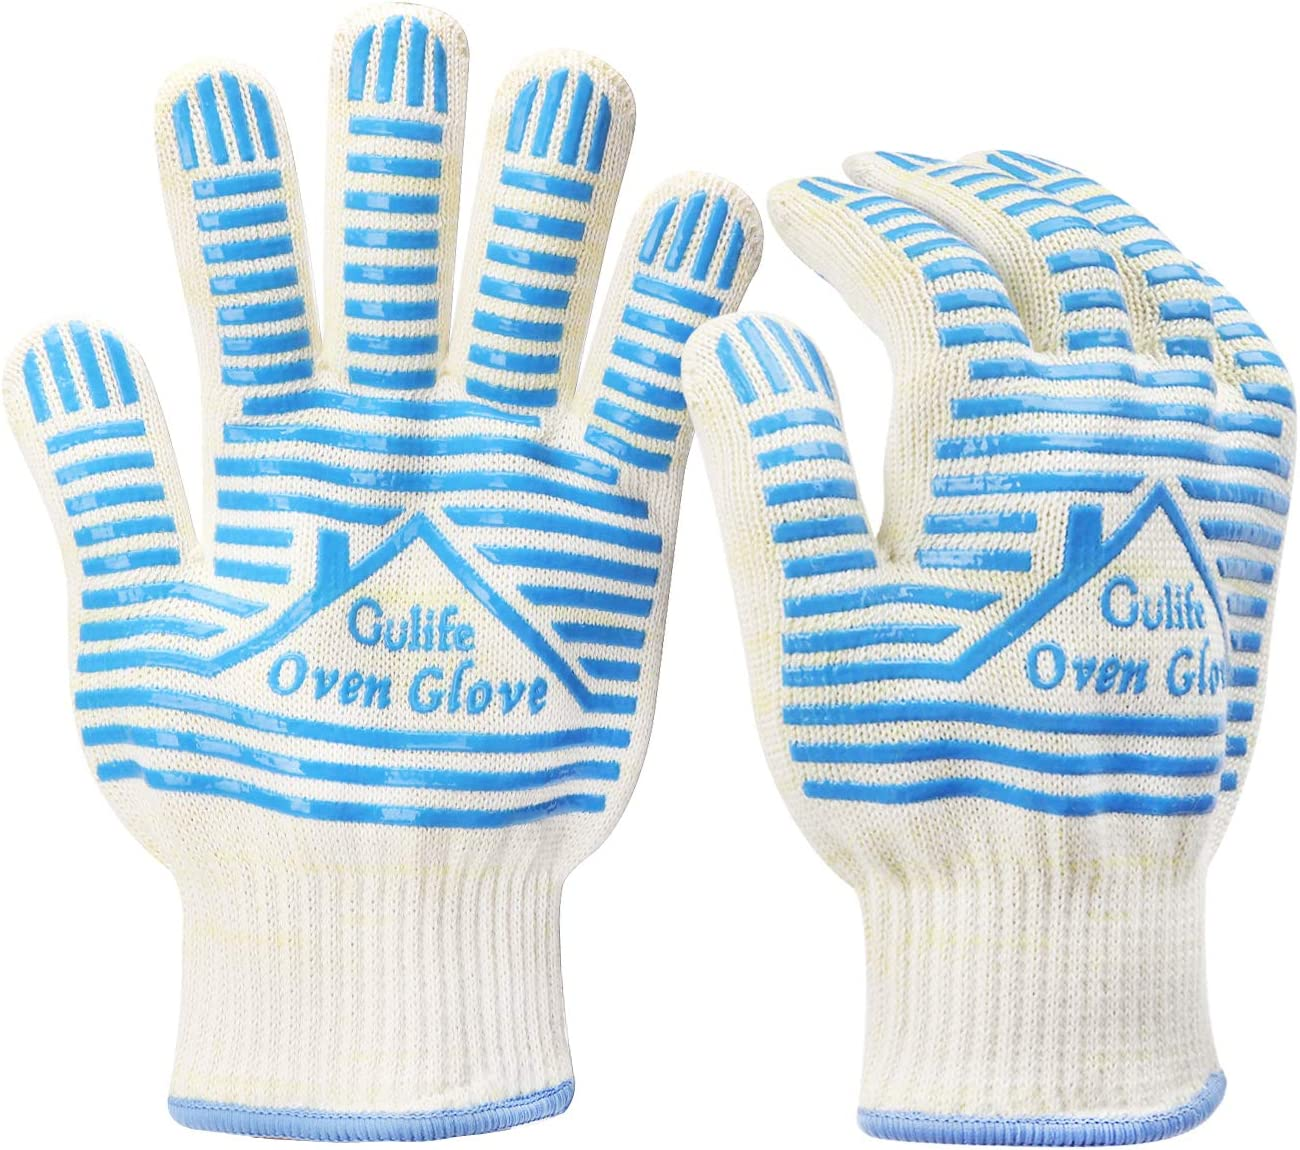 Gülife BBQ Glove Withstands Heat Up to 932F - EN407 Standard Level3, Oven Glove (Gift Packaging, 1 Pair Blue): Oven Mitts: Kitchen & Dining